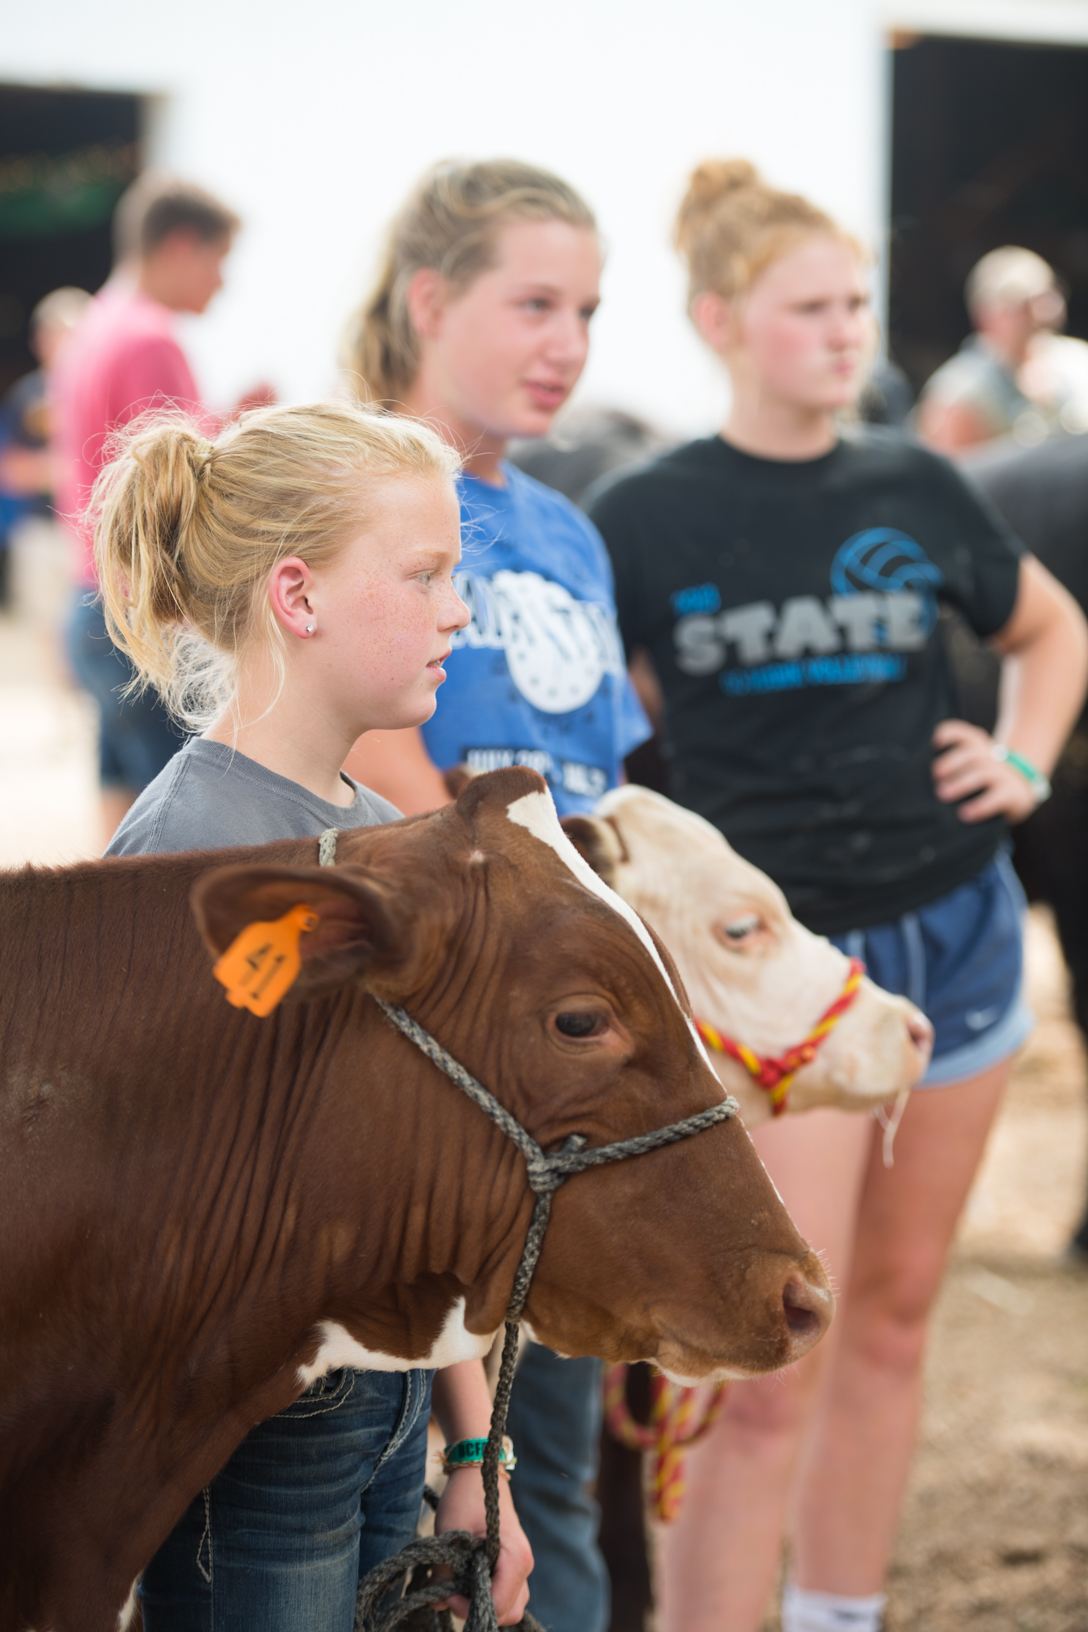 Macy Tiedt, Karissa Oldenburger and Cari Schroeder hold their cattle while waiting for a show at the Bremer County Fair in Waverly. Photo credit: Joseph L. Murphy, Iowa Soybean Association